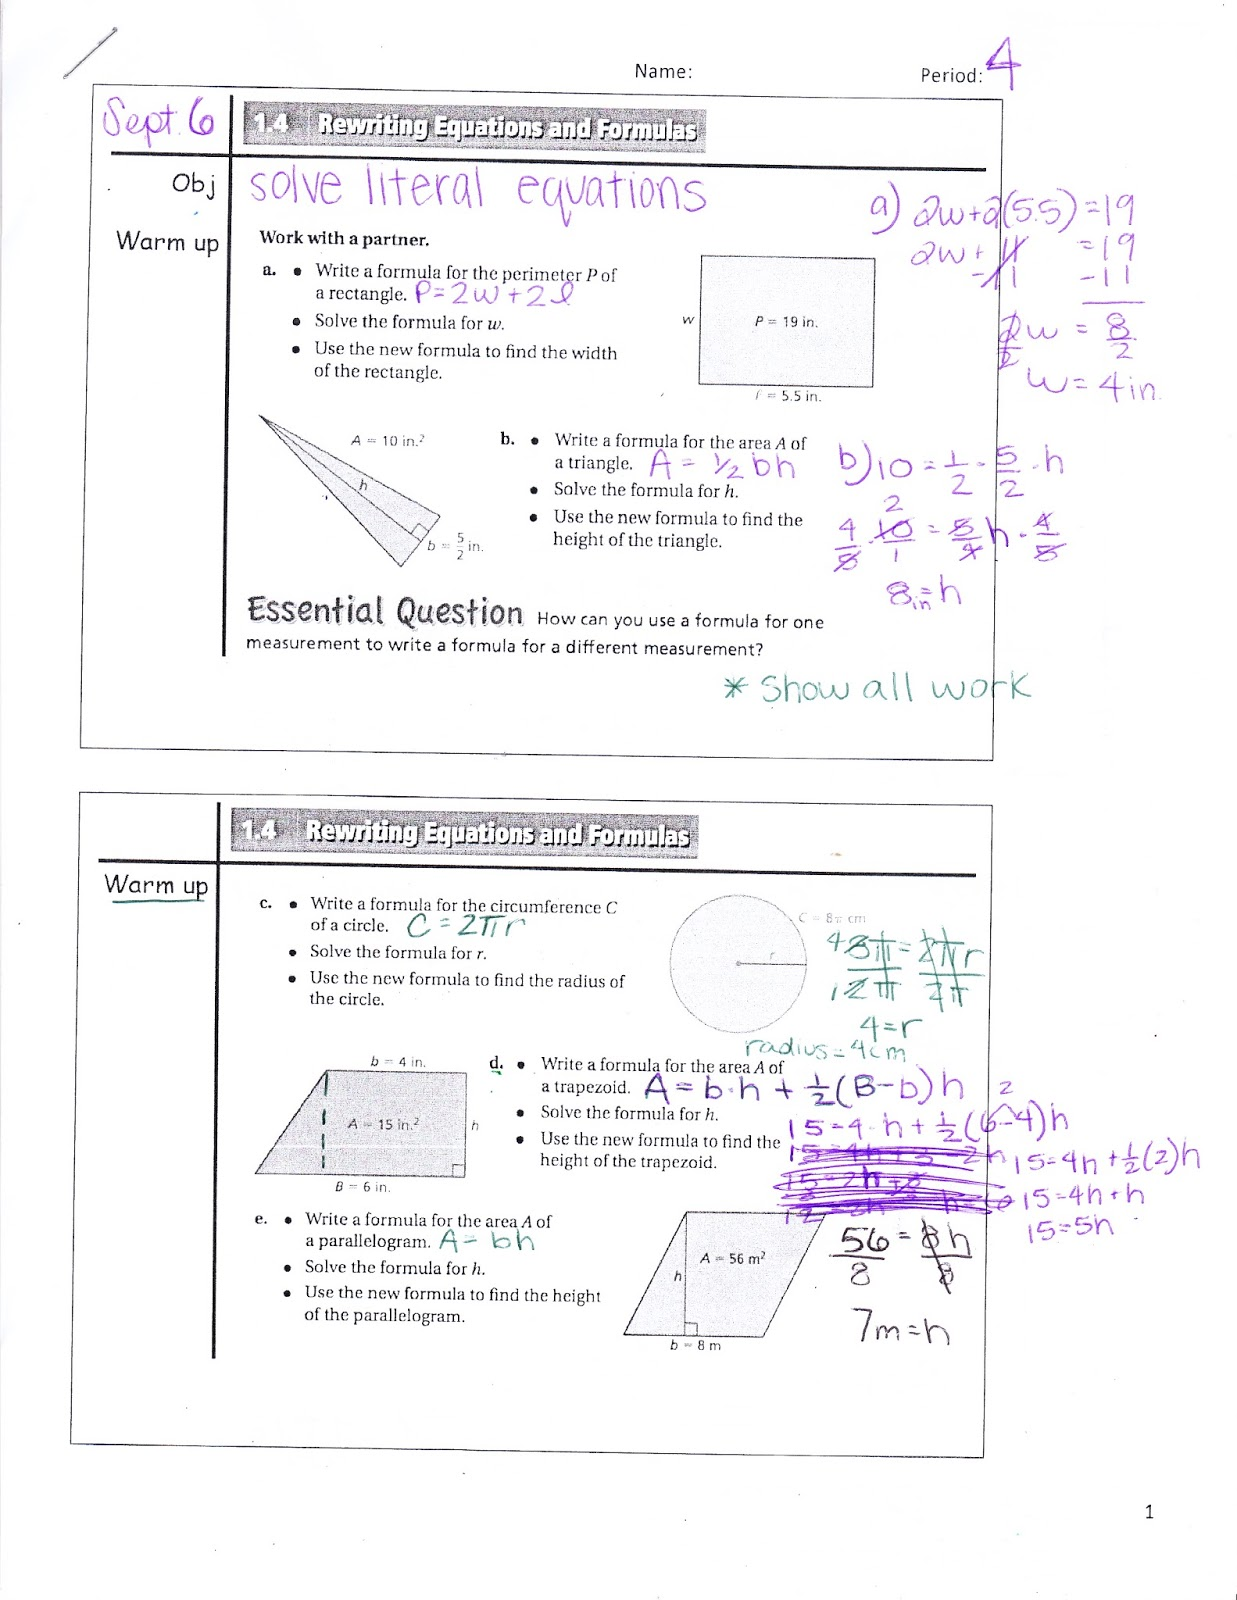 Ms Jean S Accel 7 Blog 1 4 Rewriting Equations And Formulas